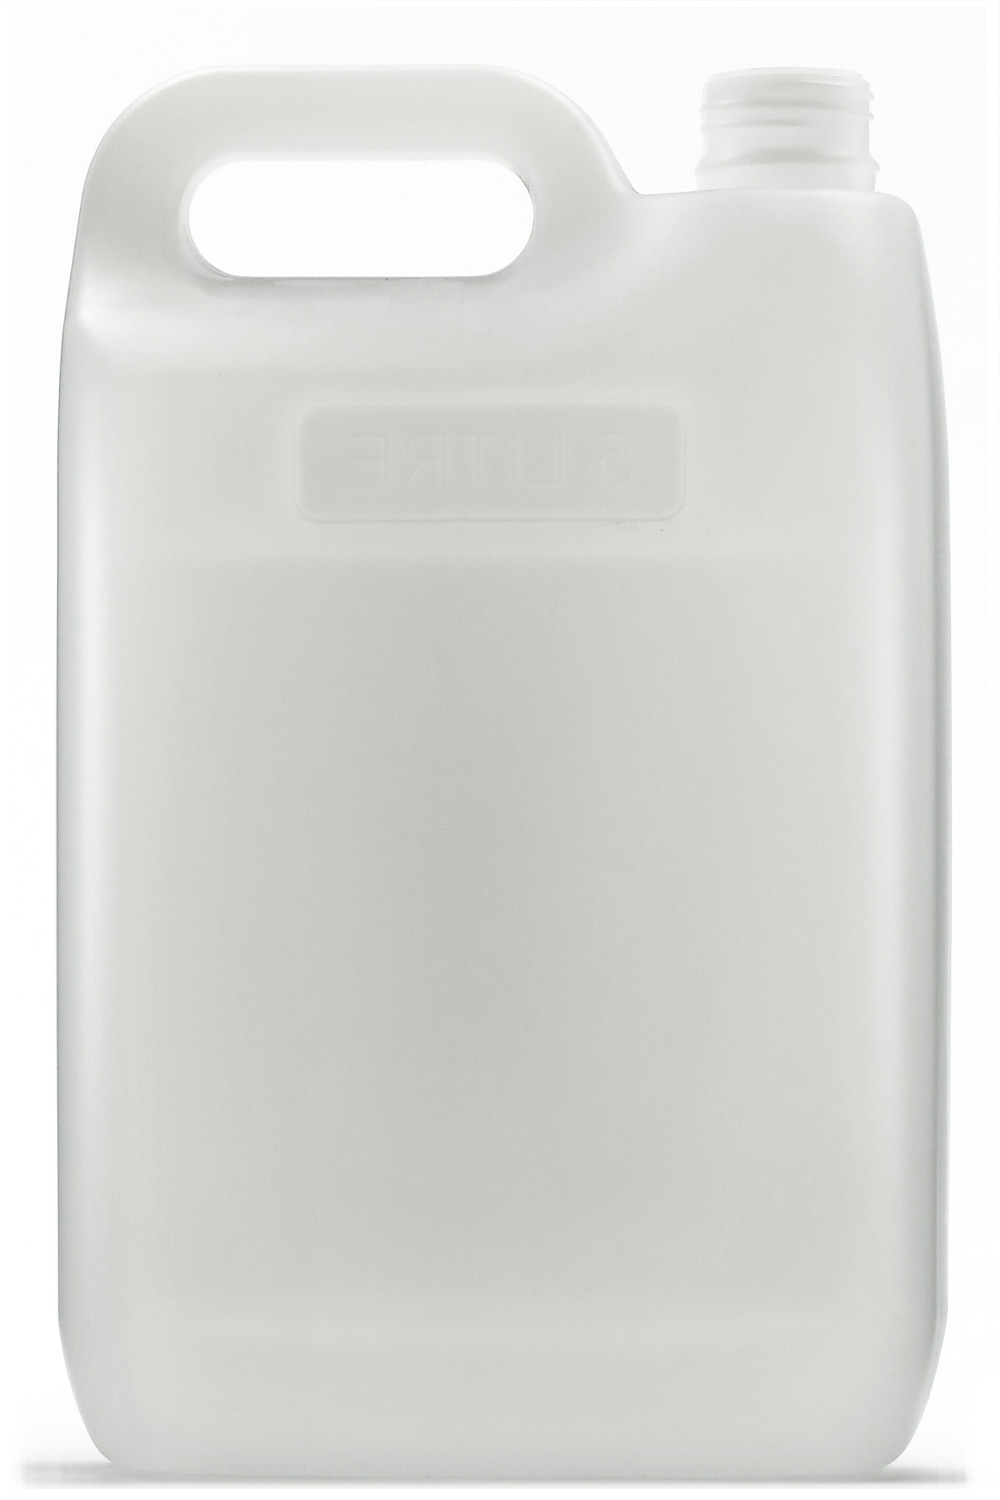 Jerrican (Plastic Bottle), Natural, 5L